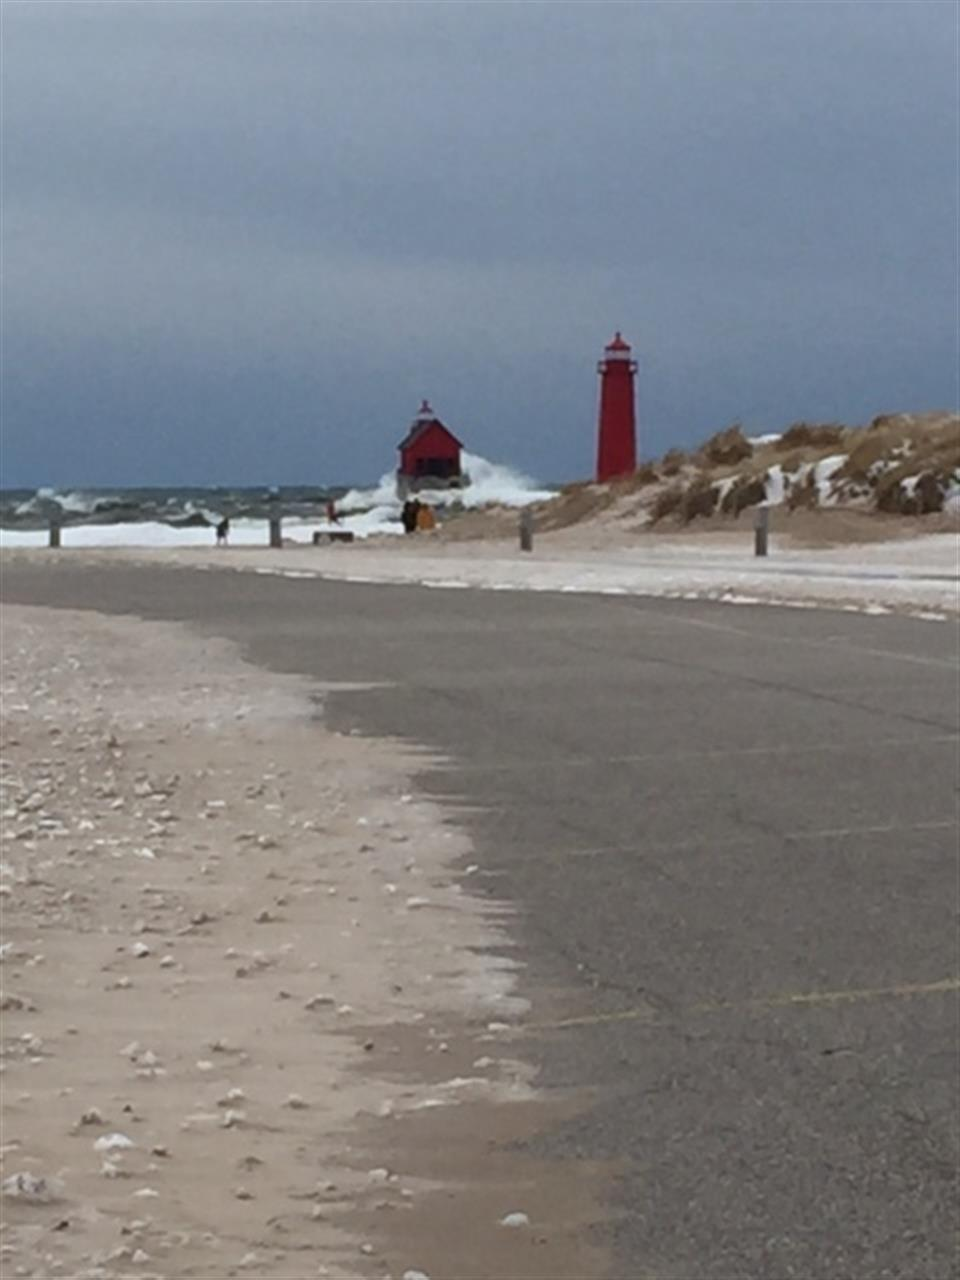 #LeadingRElocal #Lighthouse #GrandHaven #LakeMichigan